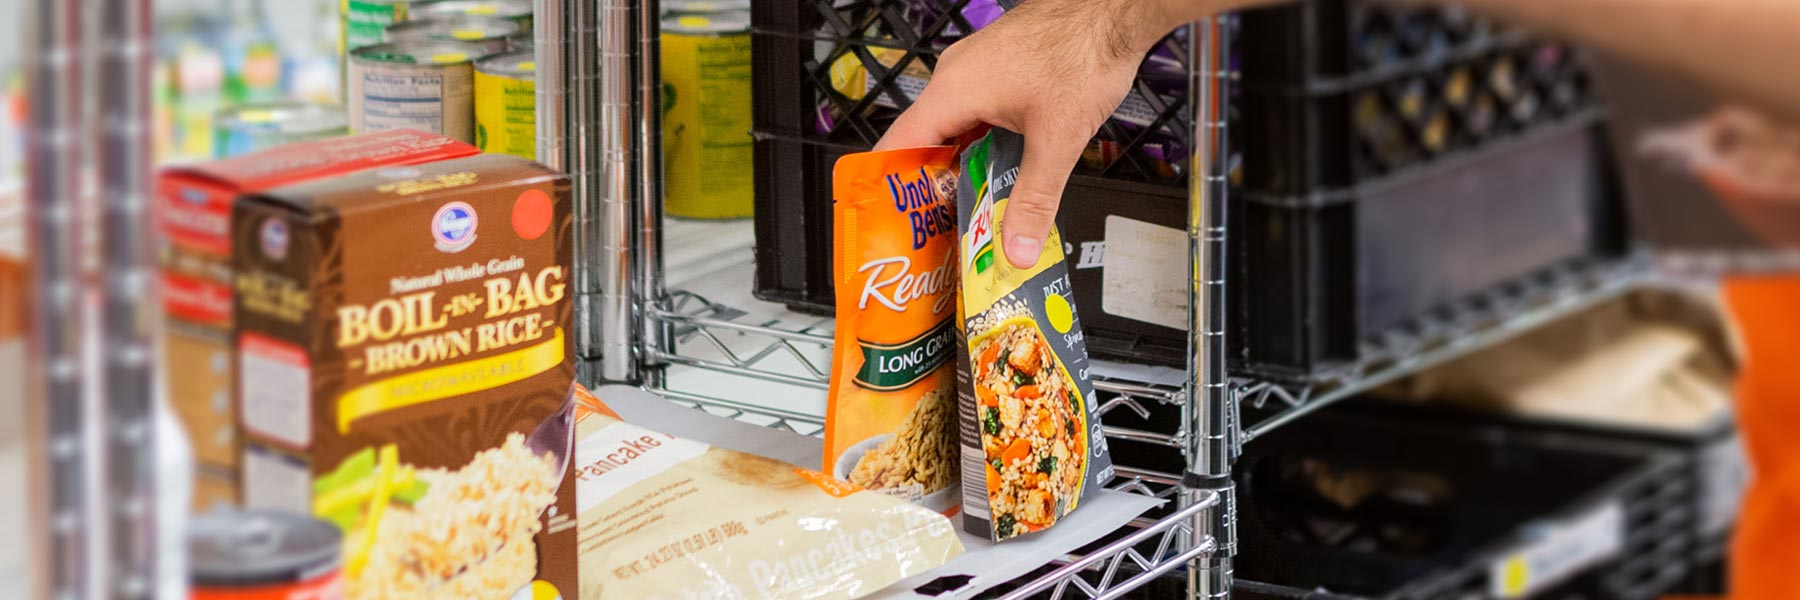 a hand placing packets of rice on a metal storage shelf